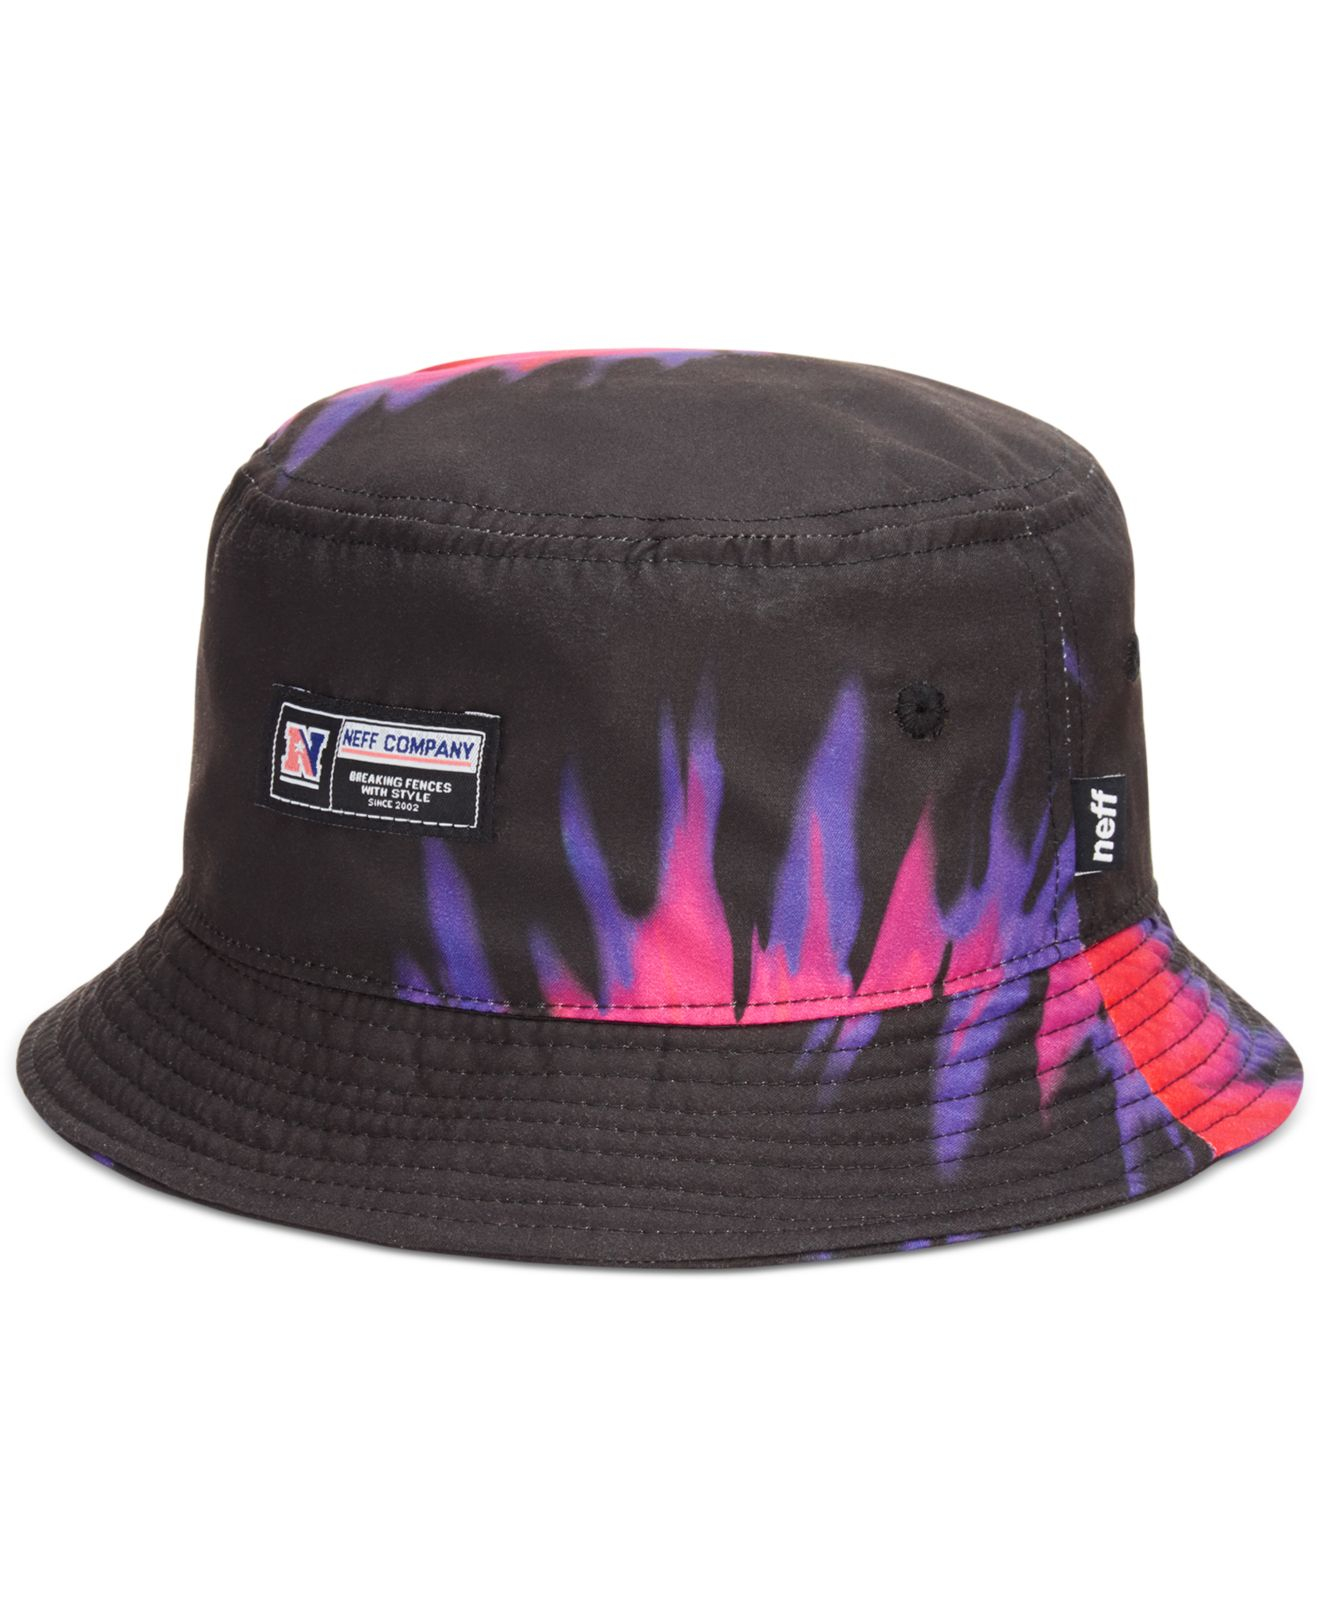 81abad5ec79 ... discount lyst neff tie dye bucket hat in black for men b3af0 cac00